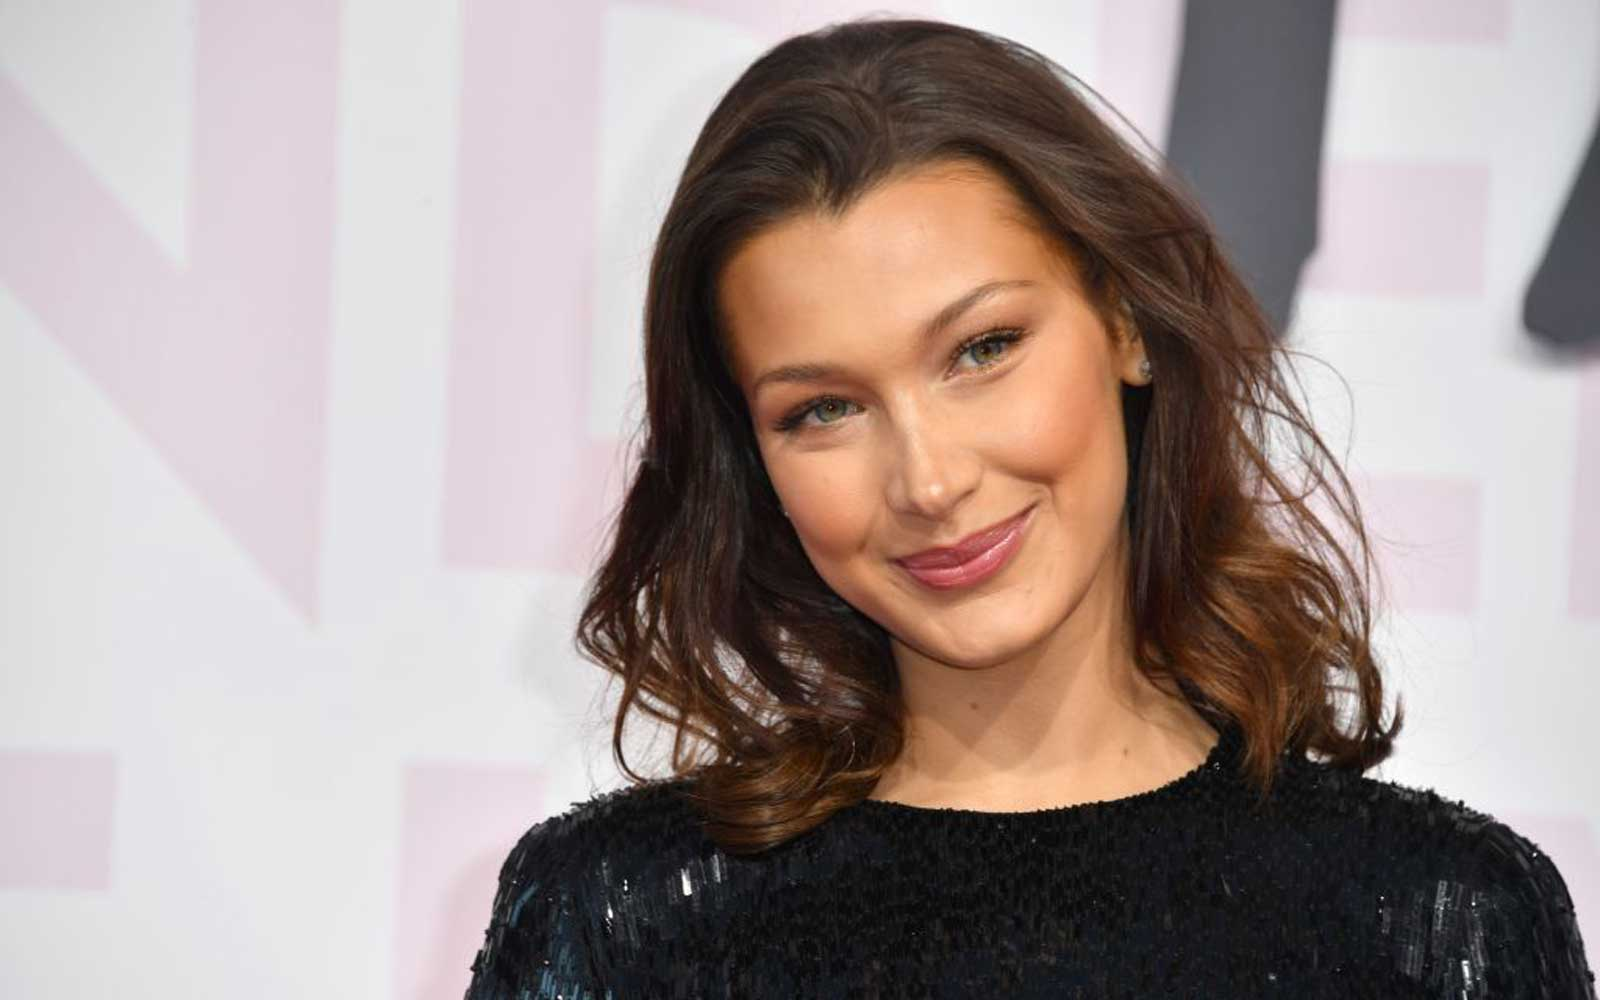 Bella Hadid Took Two Boxes of Pizza Through Airport Security So She Could Feast on Her Private Jet